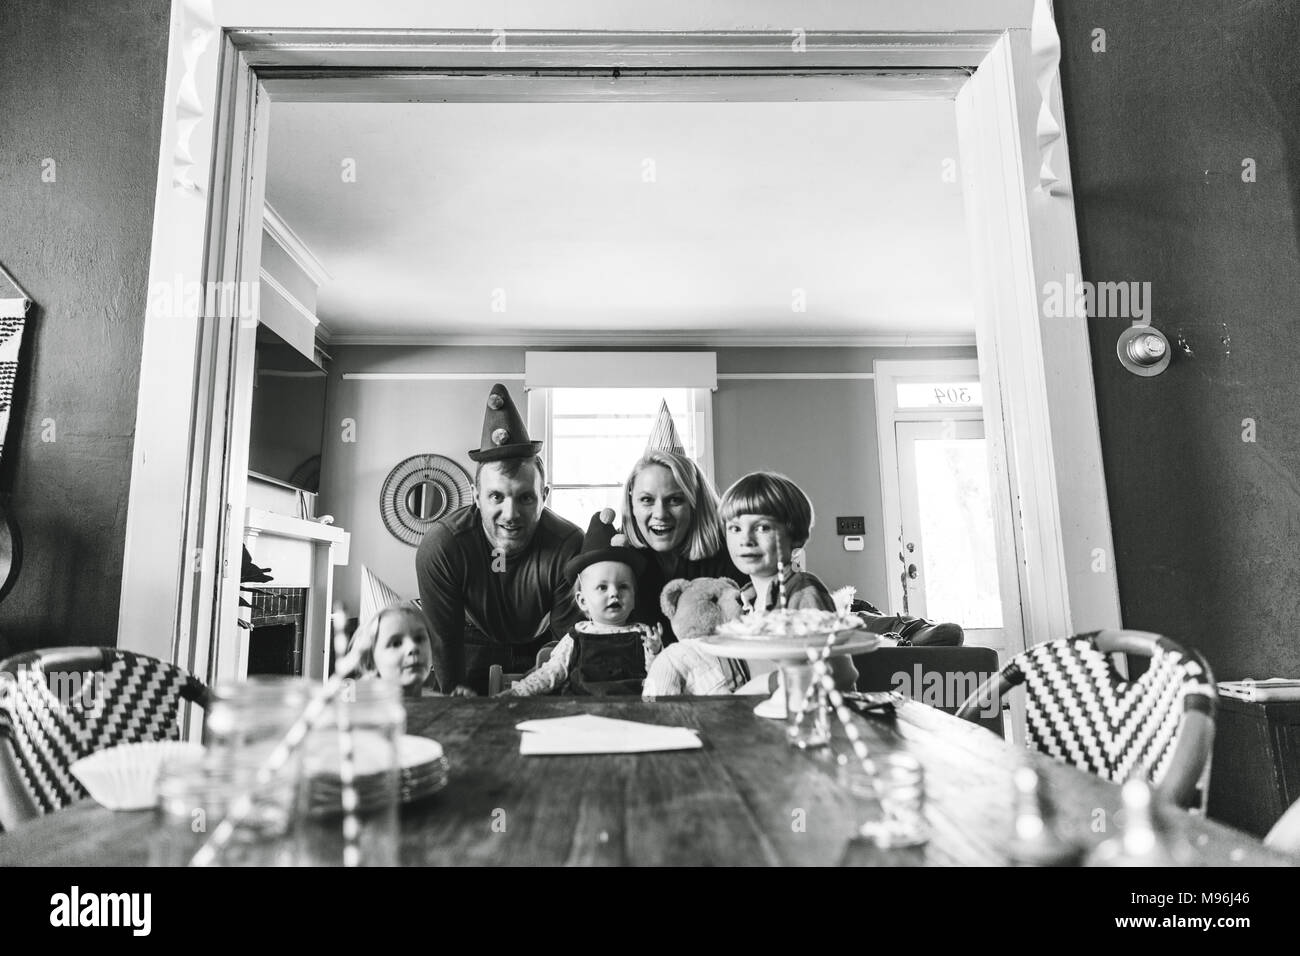 Family posing for photo at the end of table - Stock Image